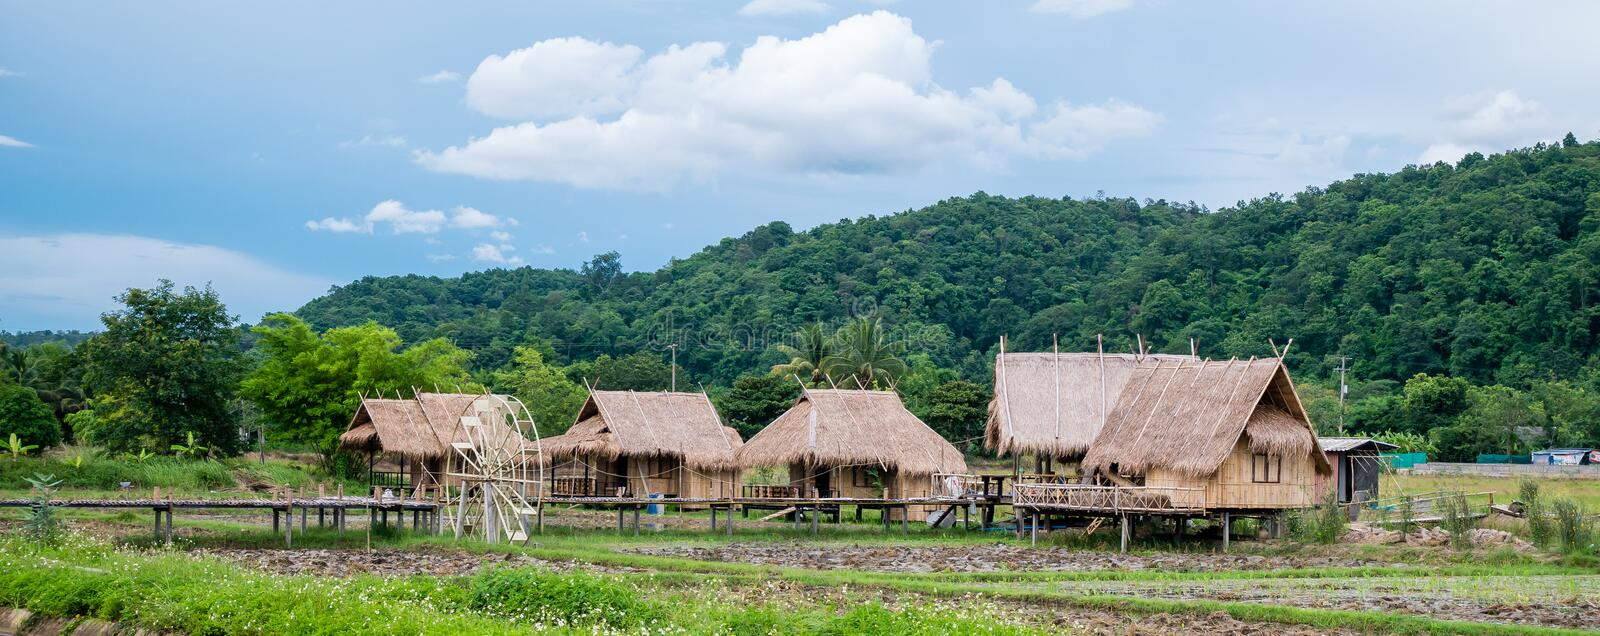 Farmer house in the rice field.Rice field in Thailand you may find the central of country. Thailand rice field royalty free stock photo